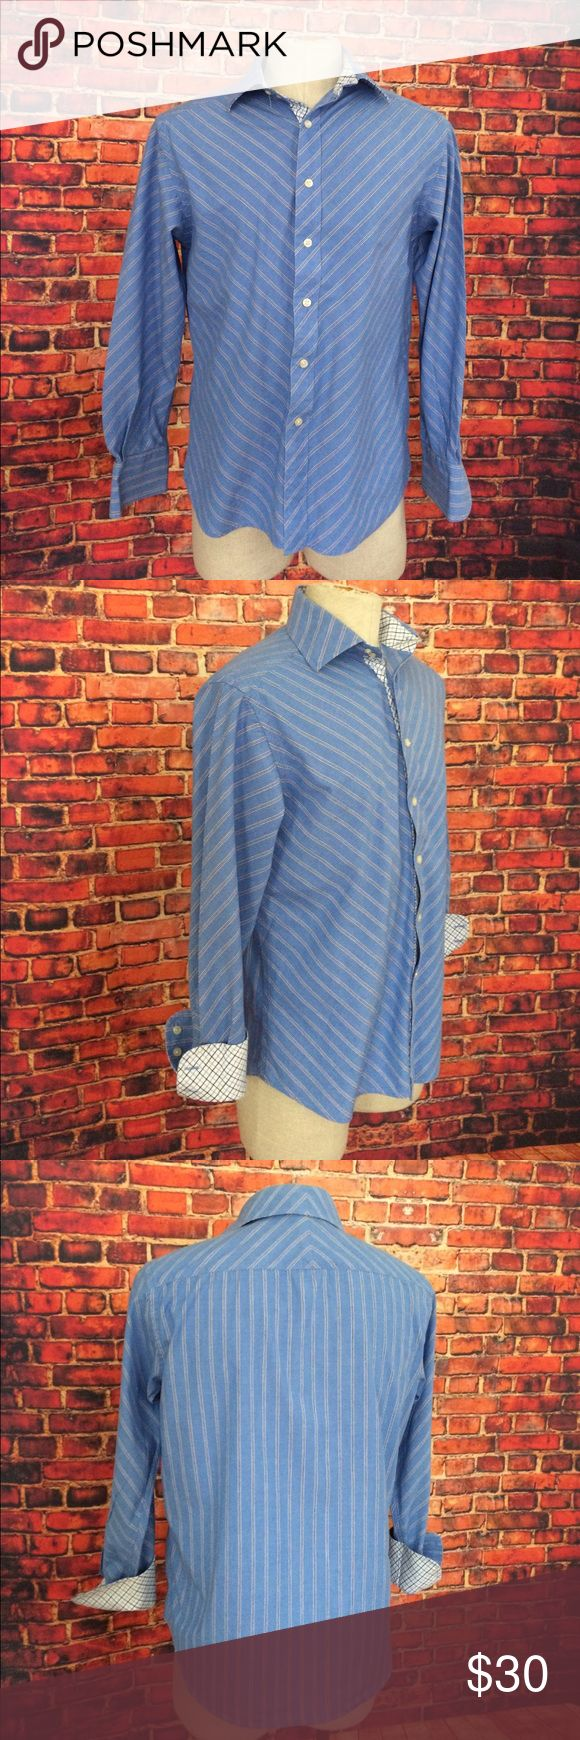 Robert Graham R & G Striped Plaid Contrast Shirt M Robert Graham R & G Blue Striped Plaid Contrast Shirt M Robert Graham Shirts Casual Button Down Shirts